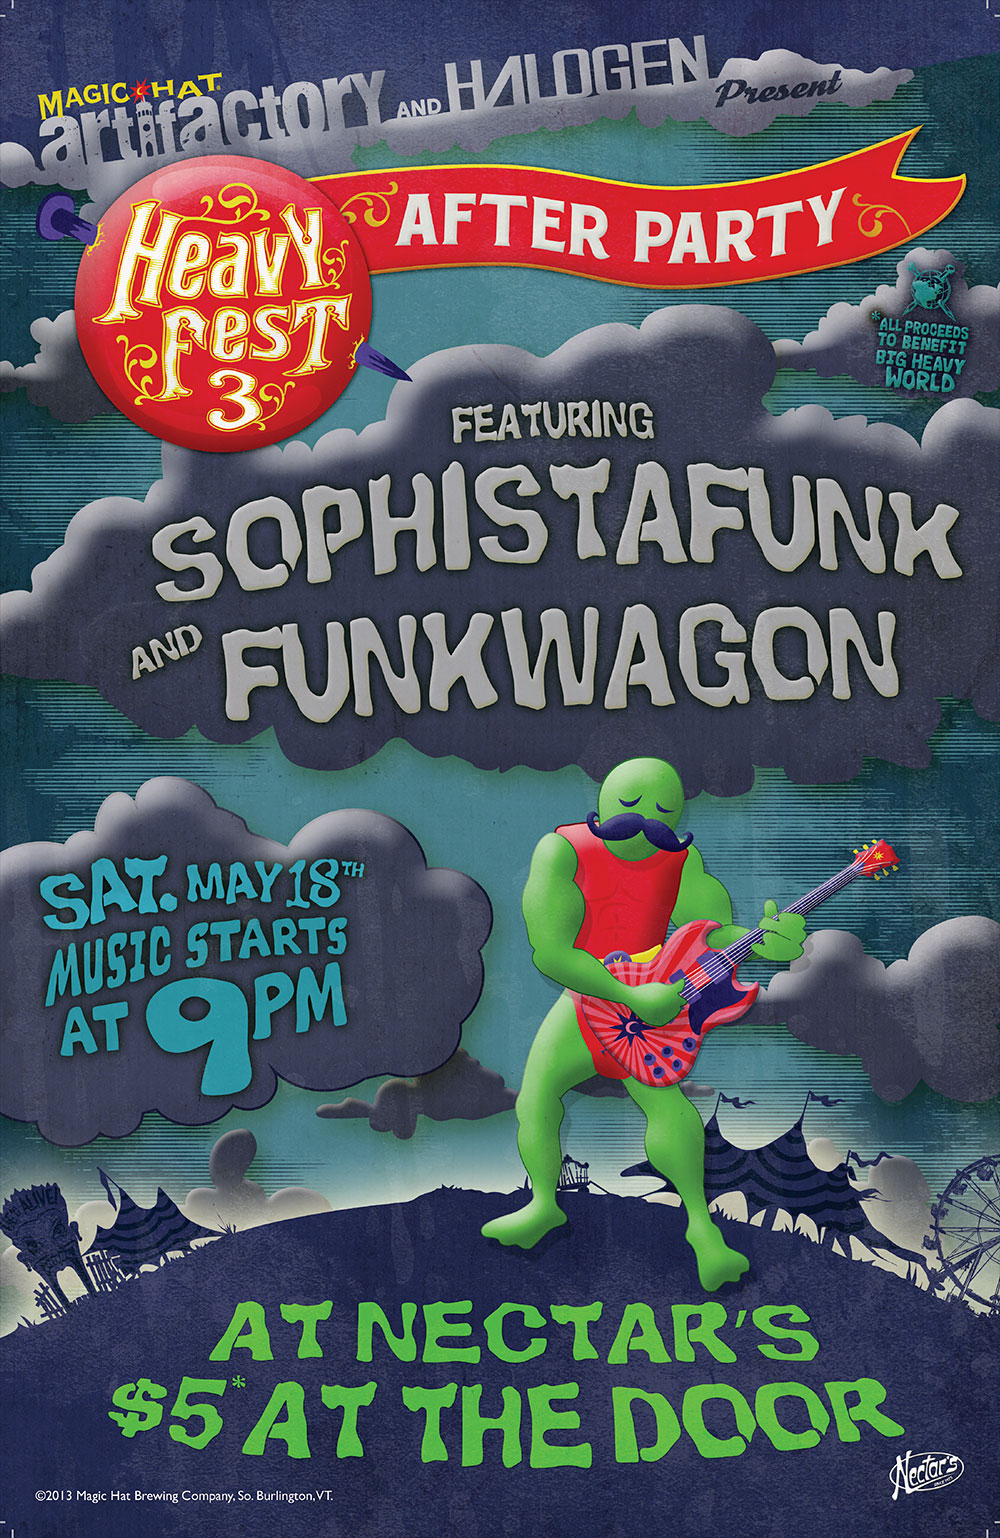 2013 After Party Poster